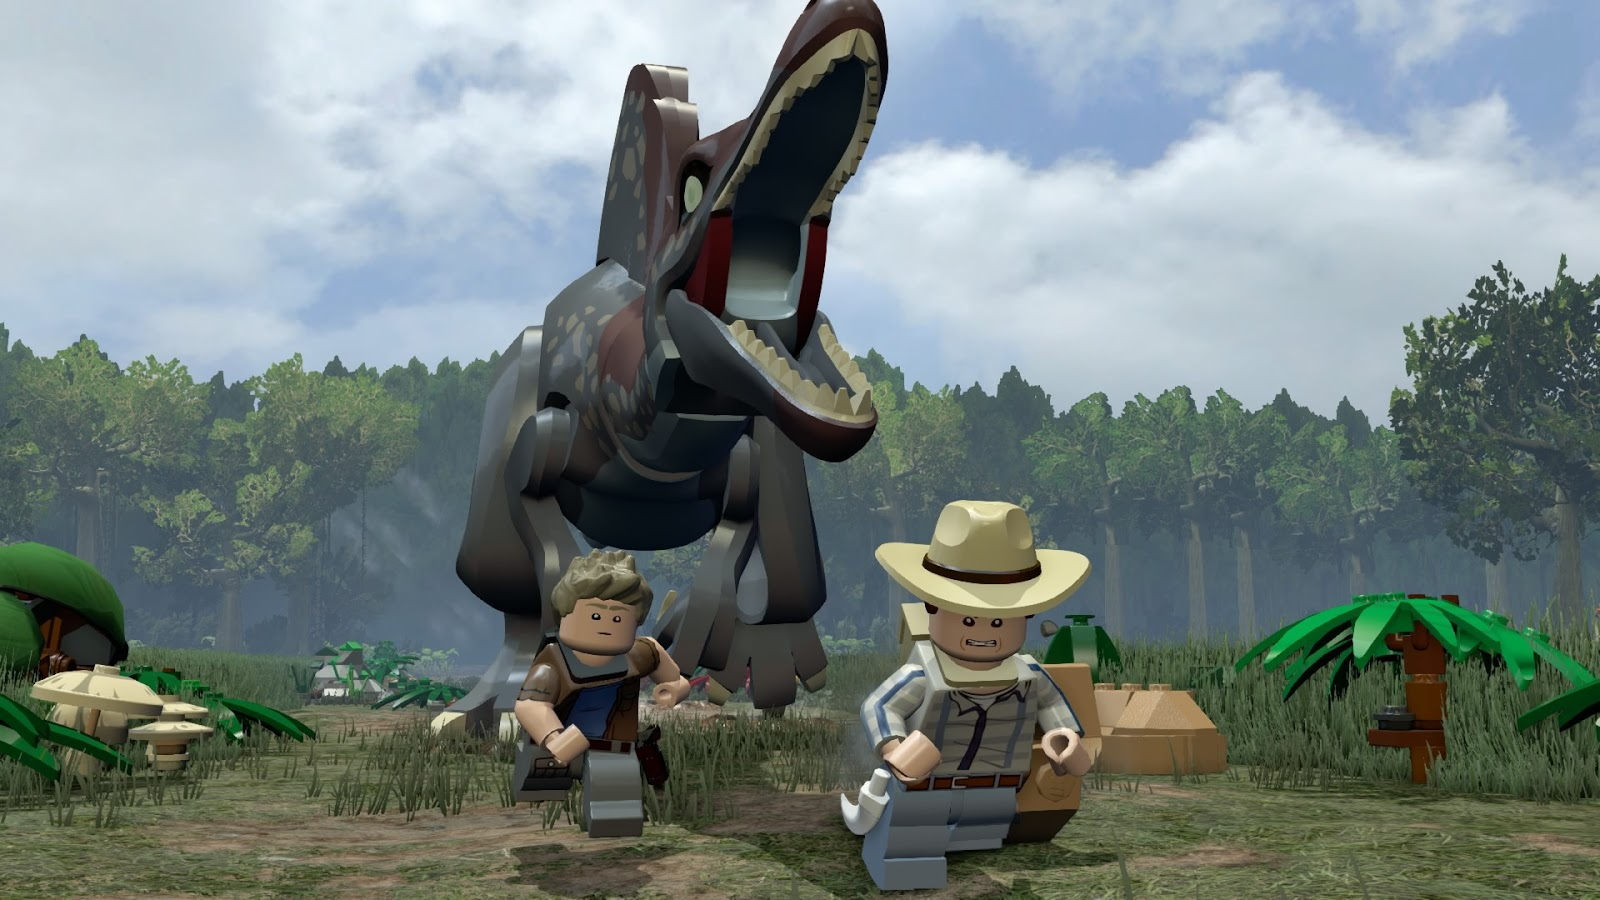 Lego Jurassic World Mac Review Chalgyrs Game Room Ps4 If There Was A Complaint From Critics About The Movie It Some Nitpicking Over Of Finer Points In Storyline